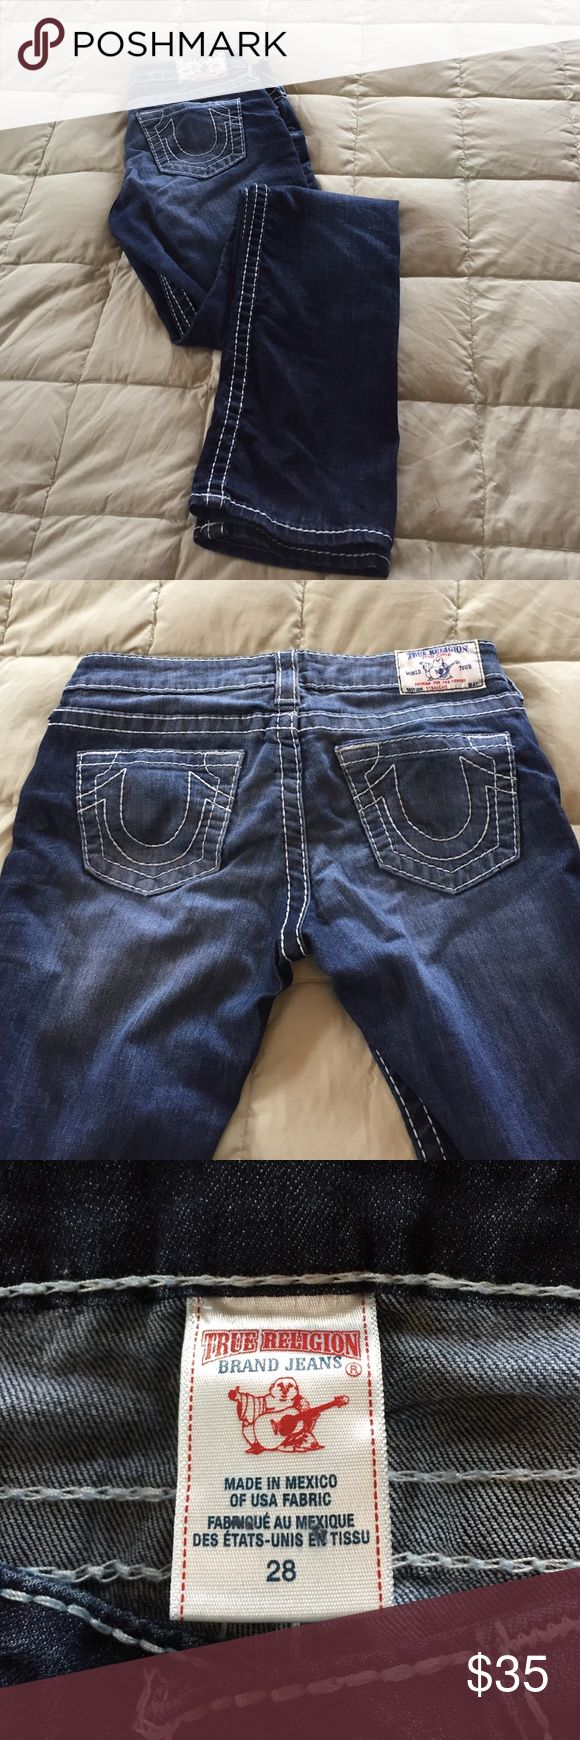 "True Religion Straight Leg Jeans True Religion straight leg jeans size 28.  Purchased new at TR outlet.  32"" inseam. Lightly worn. Downsizing so it's your lucky day.  These have a straight leg not skinny. True Religion Jeans Straight Leg"